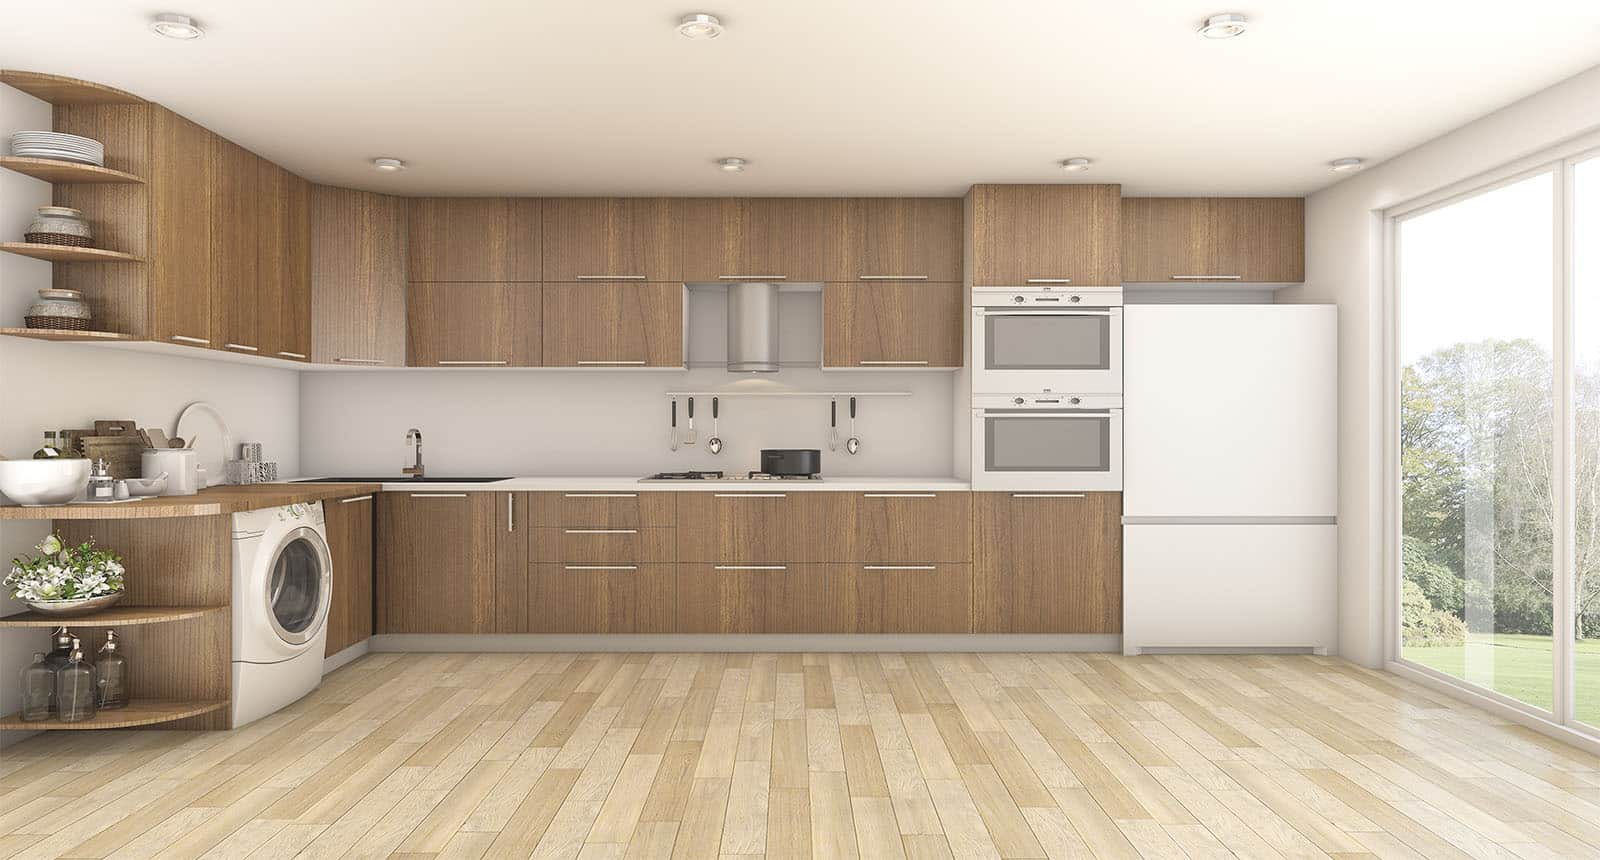 Rendering Wood Laundry Kitchen